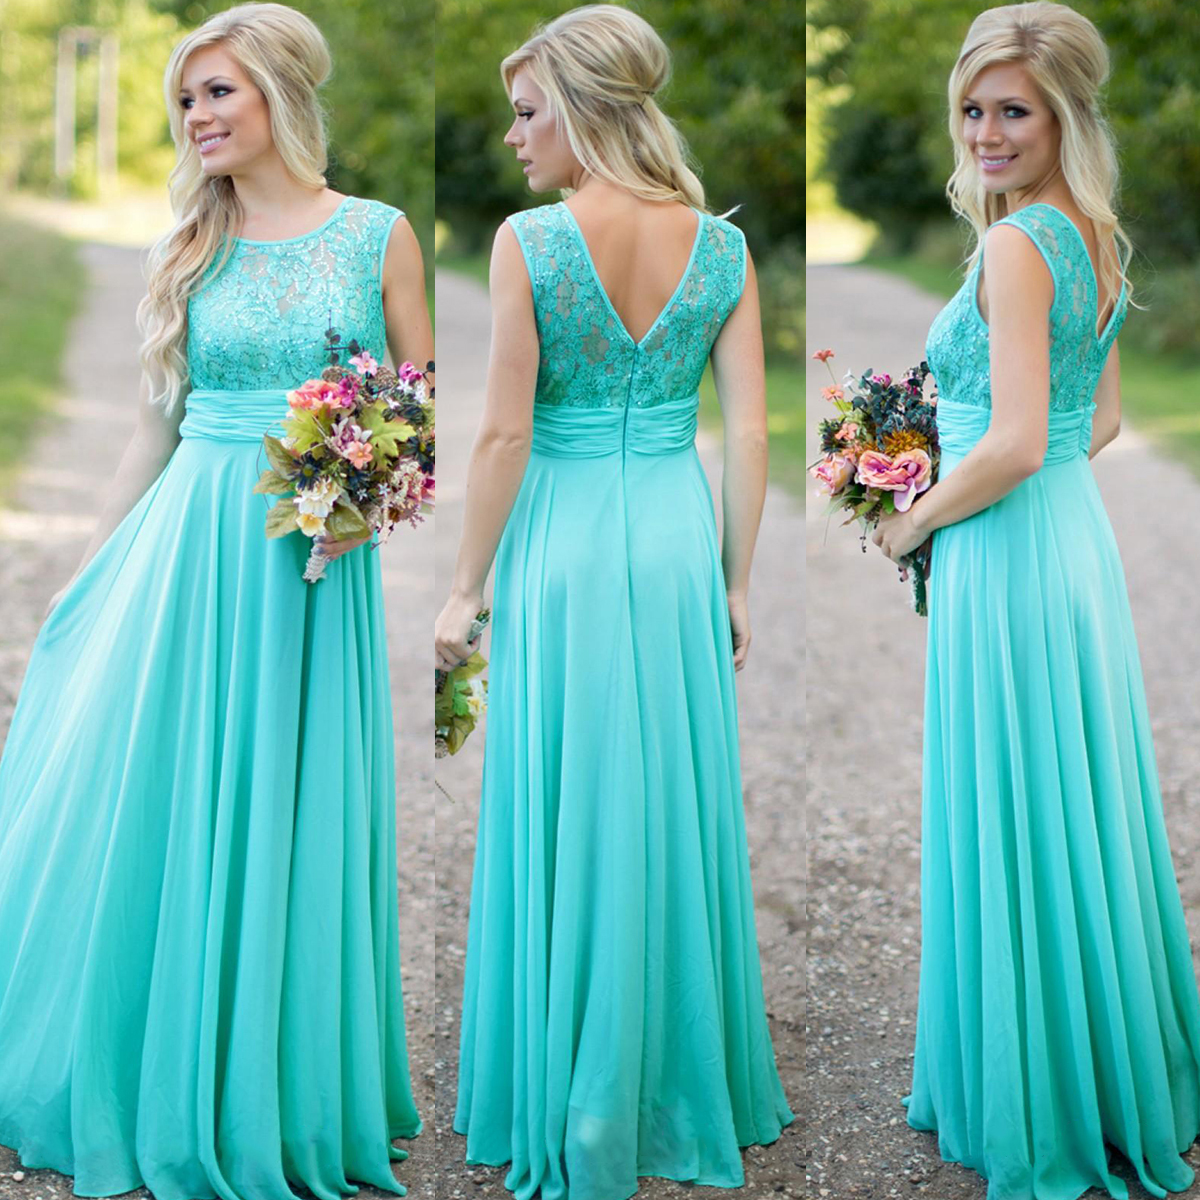 Turquoise blue bridesmaid dress lace bridesmaid dress long turquoise blue bridesmaid dress lace bridesmaid dress long bridesmaid dress wedding party dress cheap bridesmaid dress chiffon bridesmaid dress ombrellifo Image collections